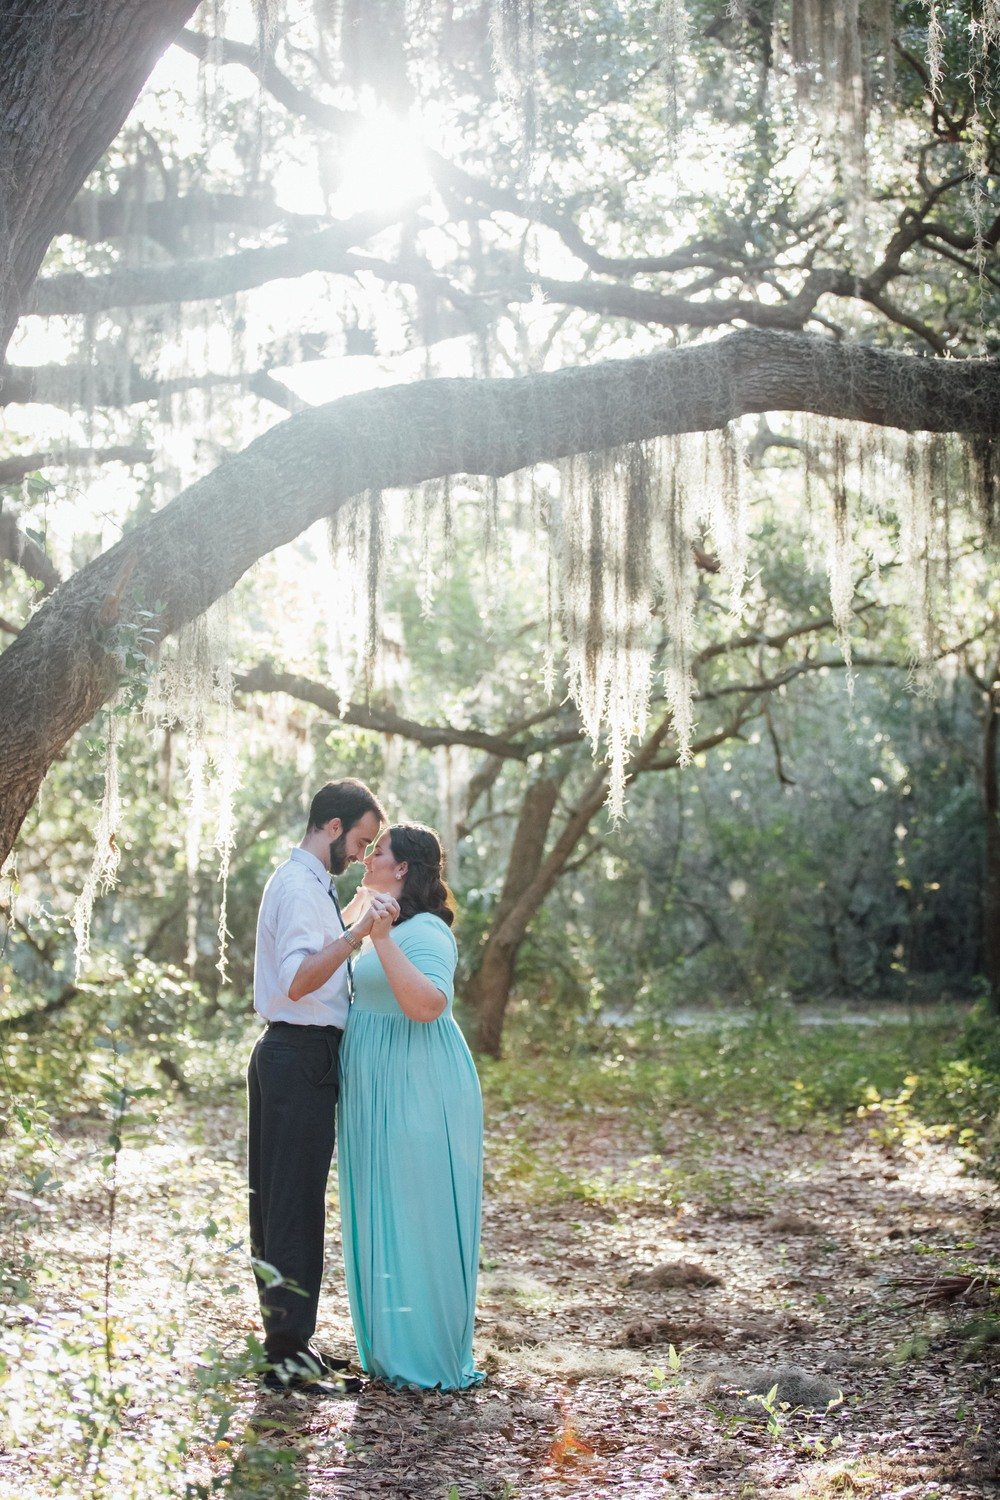 Orlando maternity photography